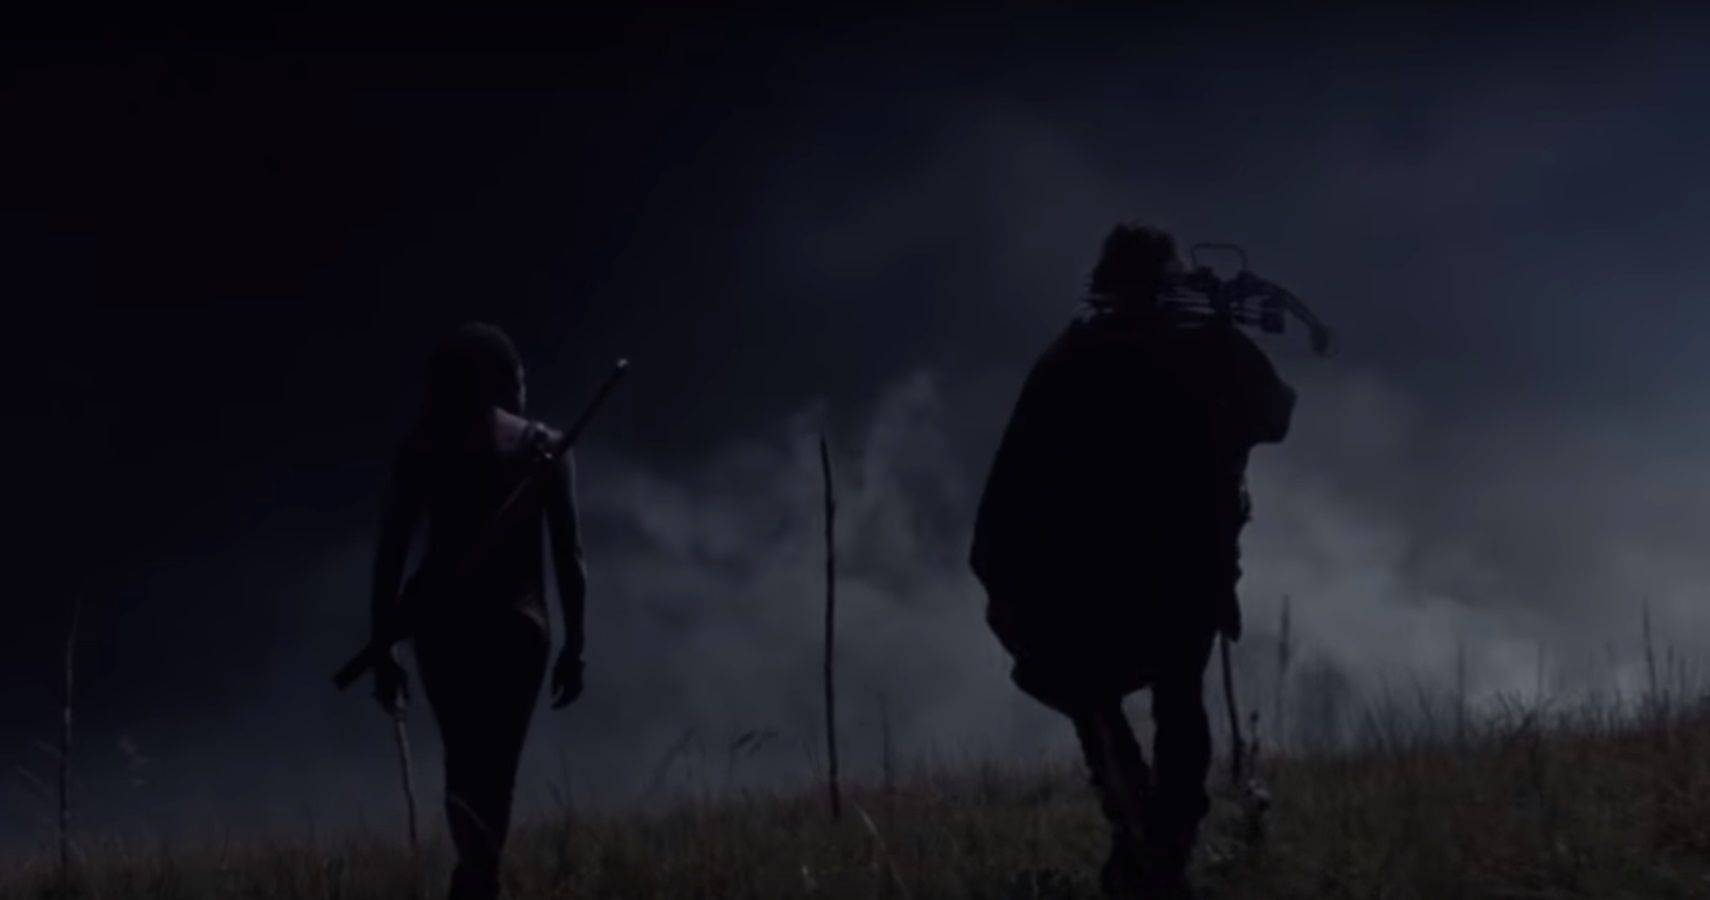 SDCC 2019: The Walking Dead Season 10 Gets A Trailer, Loses A Michonne